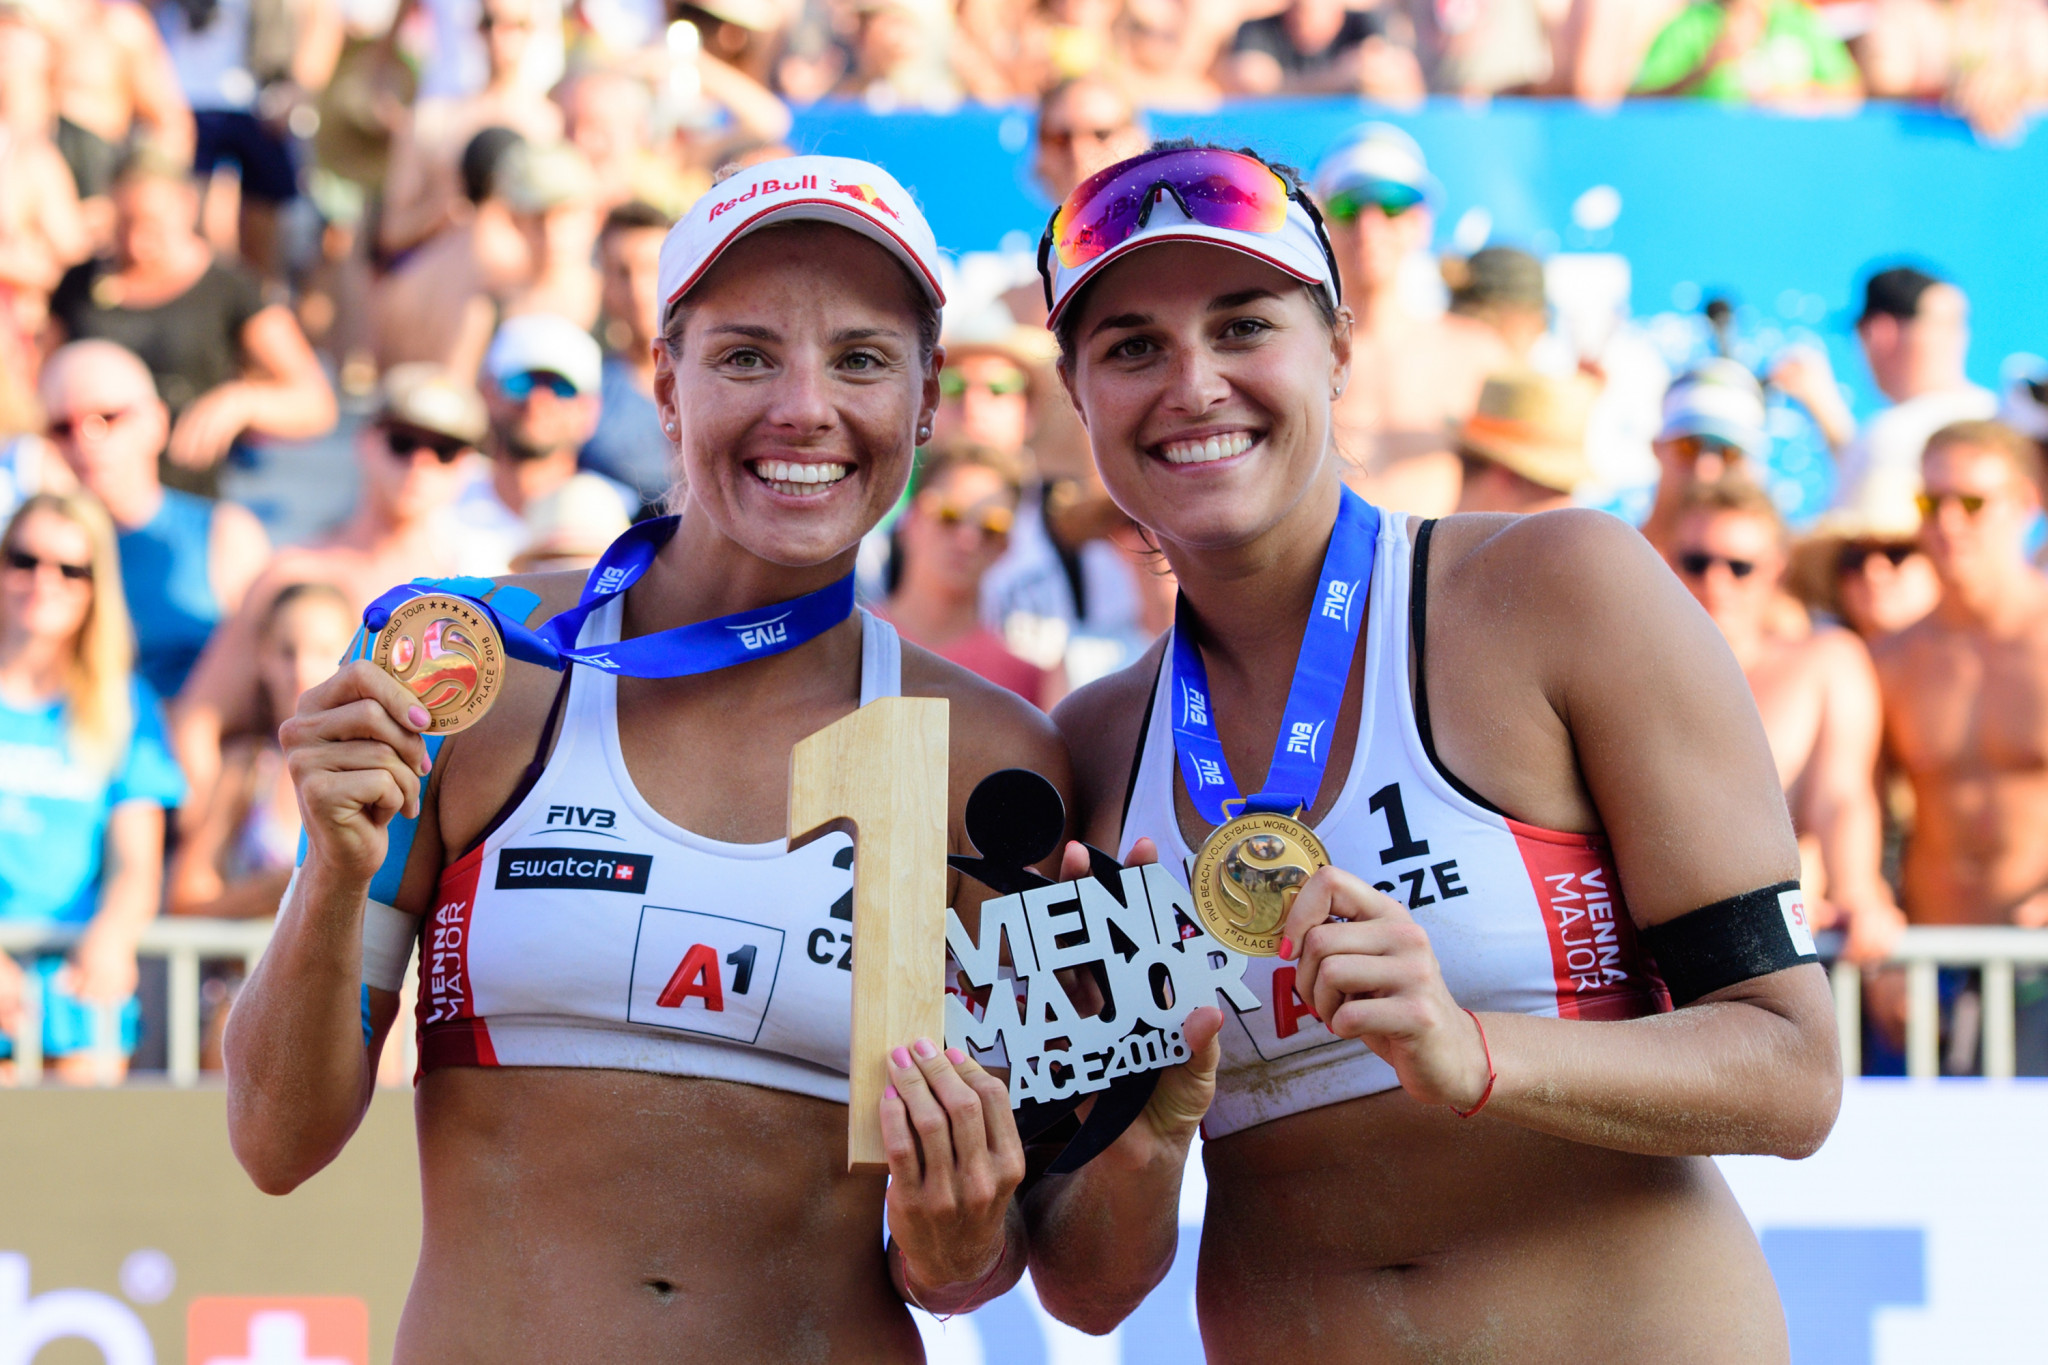 Barbora Hermannova and Markita Slukova of the Czech Republic are the top seeds in the women's event ©FIVB